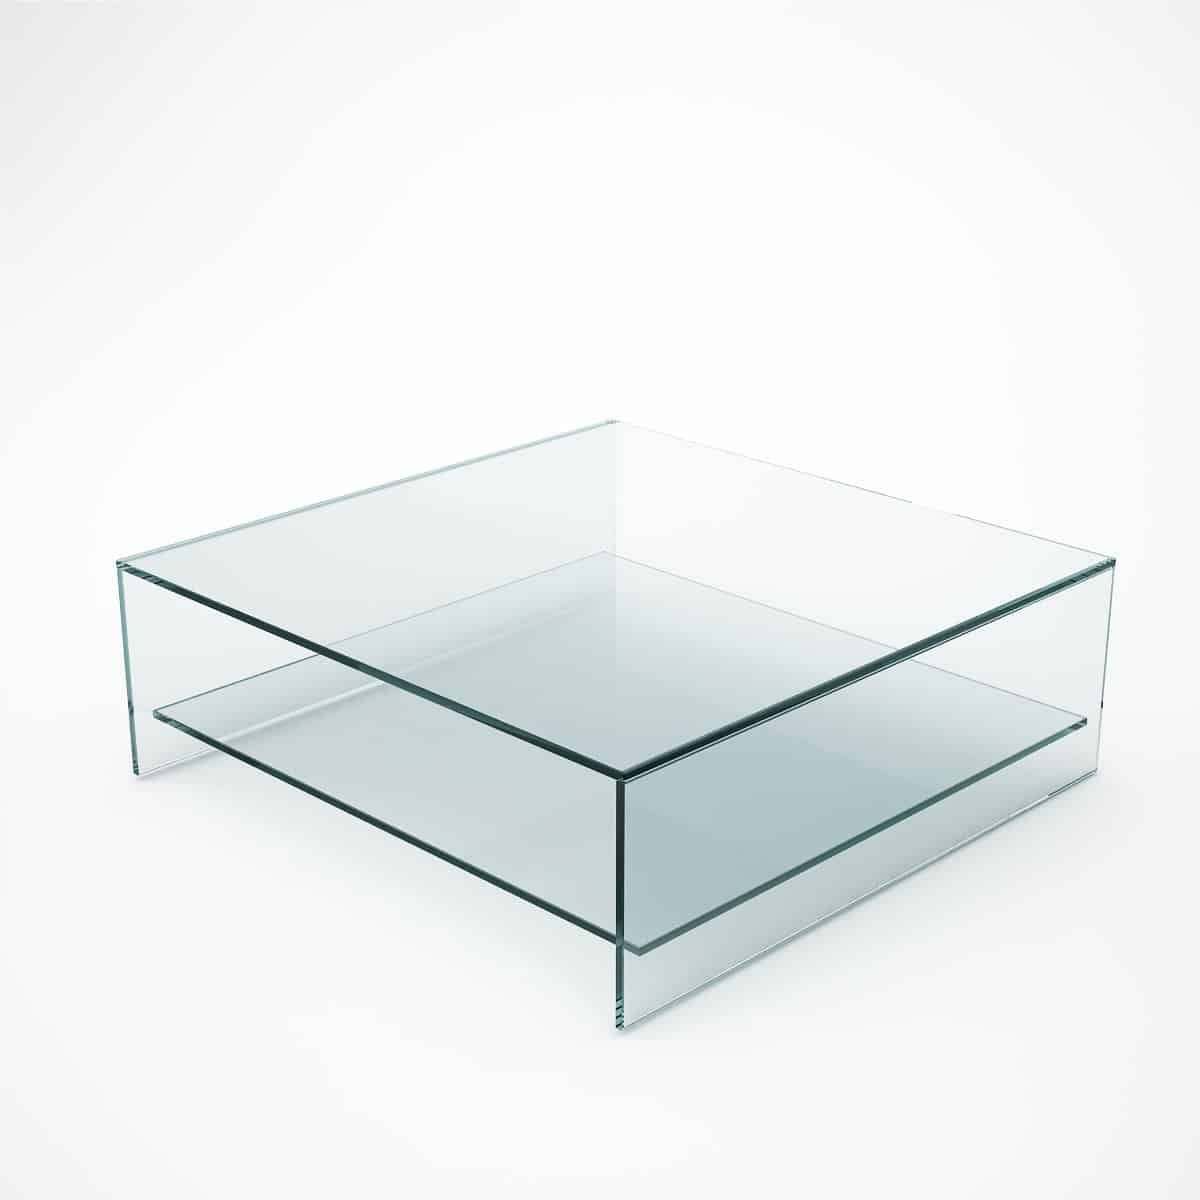 Square Glass Coffee Table With Shelf Square Glass Coffee Table Glass Coffee Table Square Coffee Tables Living Room [ 1200 x 1200 Pixel ]